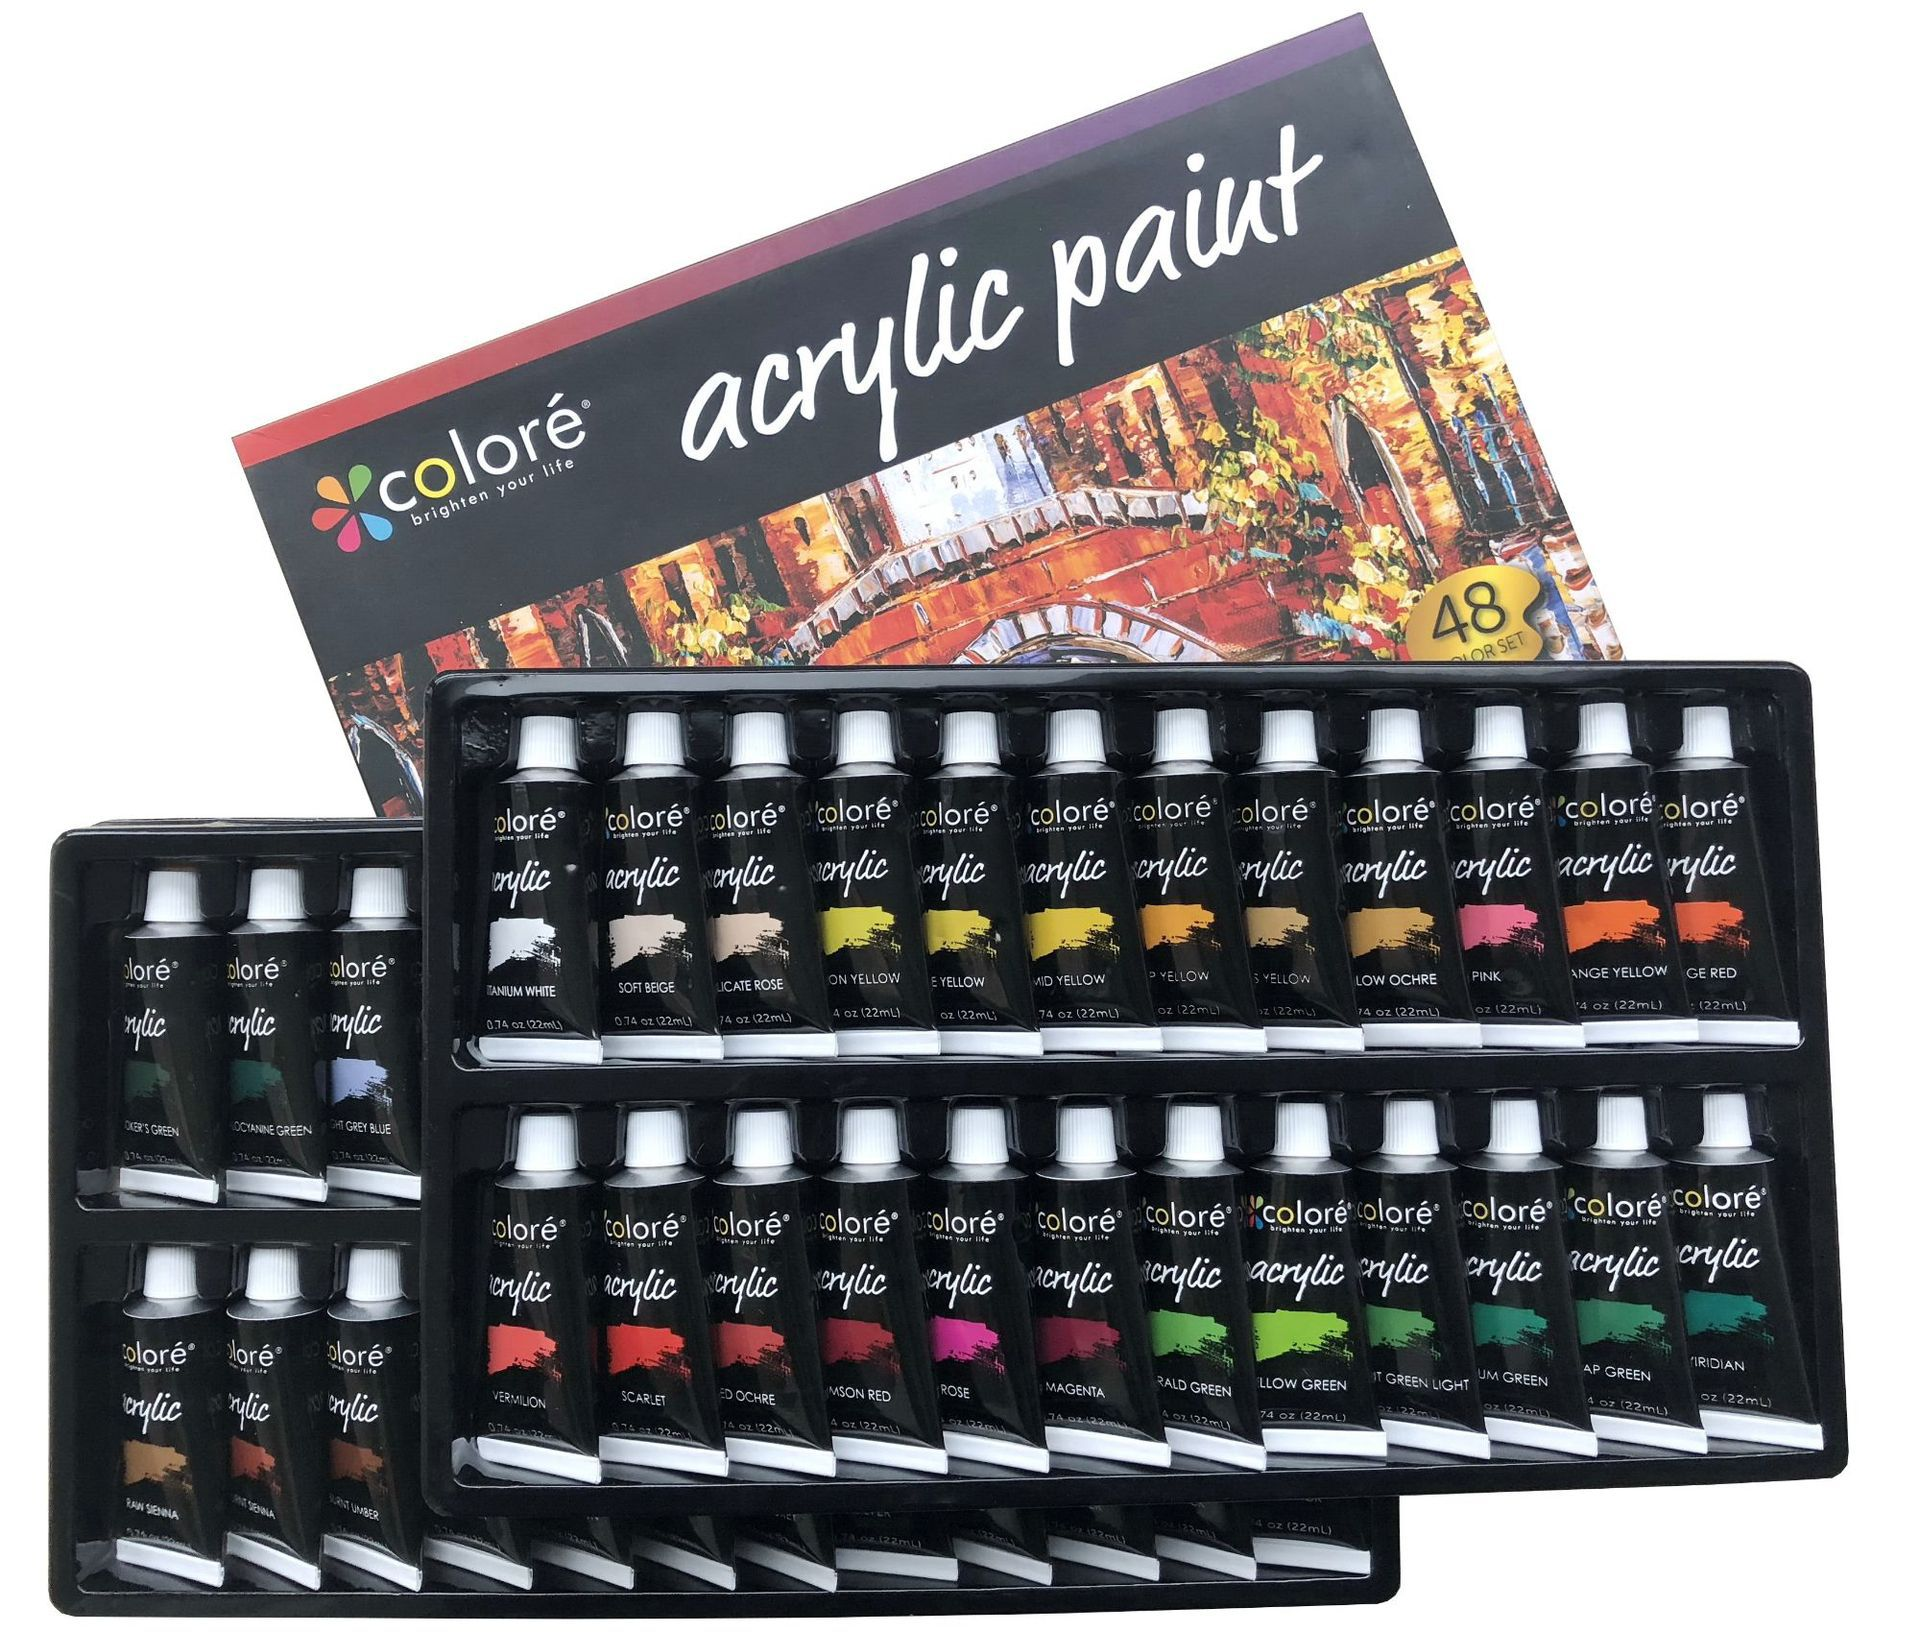 Acrylic Paint Set,48 x22ml Tubes Artist Quality NonToxic Rich Pigments Colors Great for Kids Adults Professional Painting Crafts